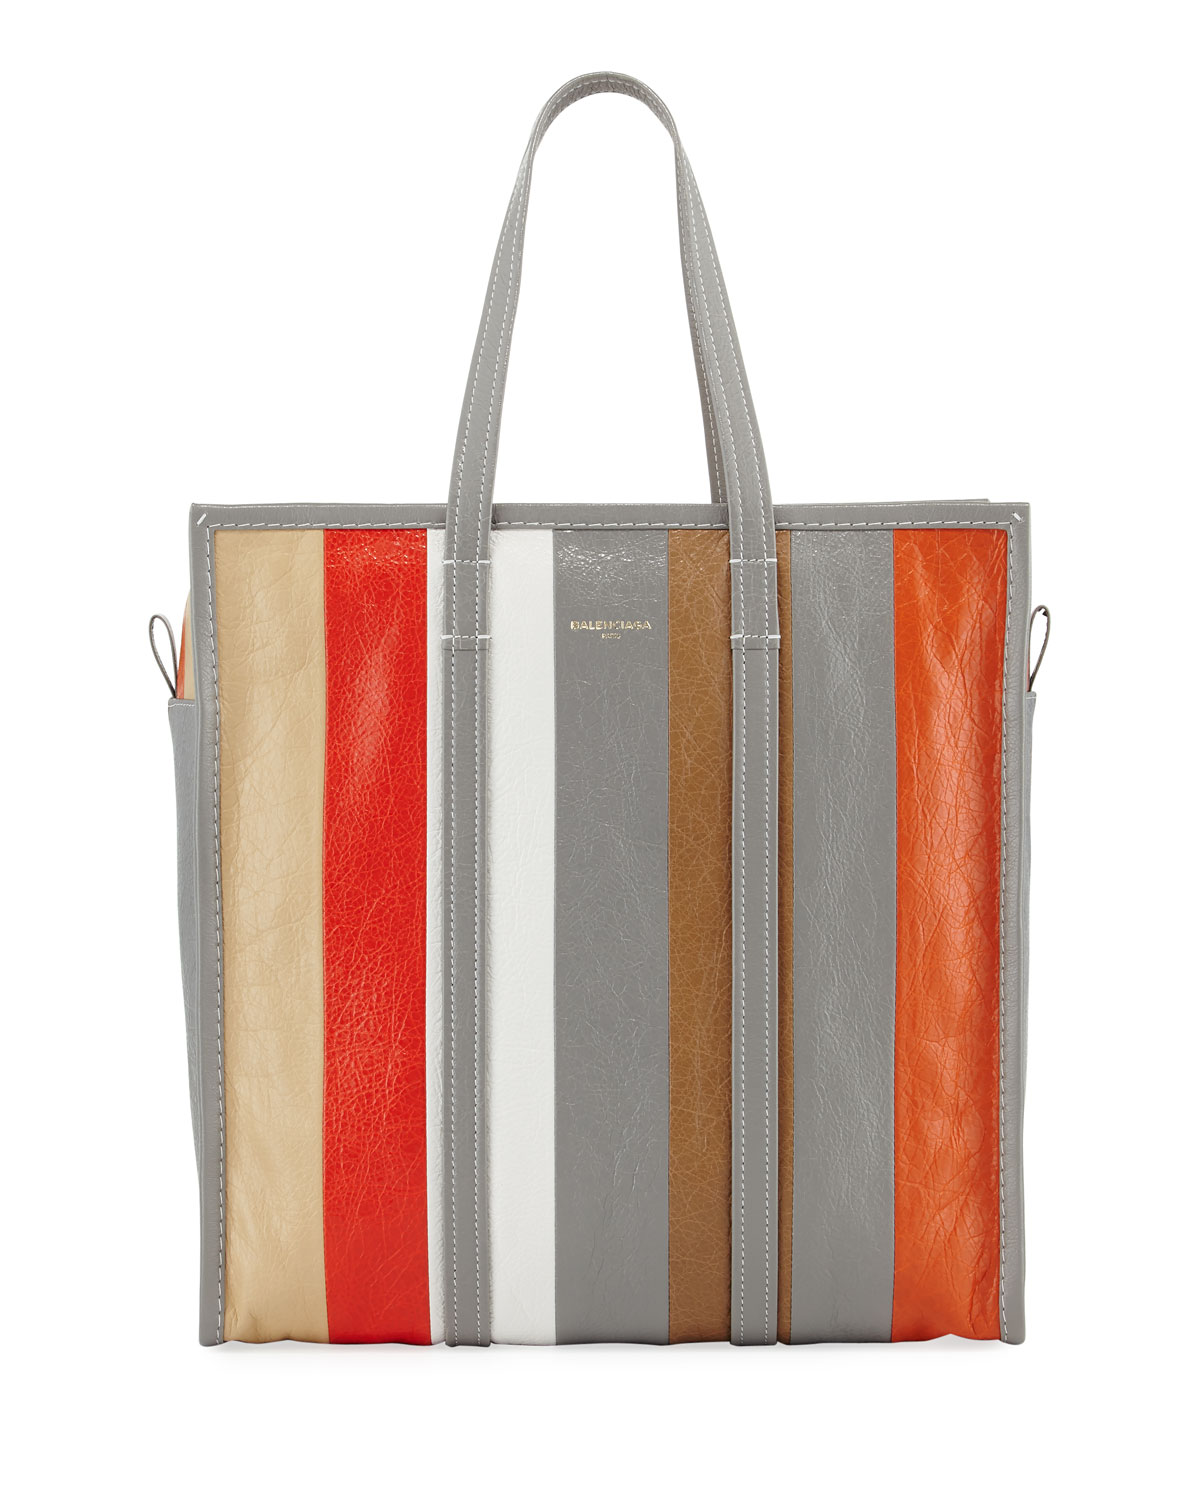 on sale dirt cheap latest design Bazar Shopper Medium Striped Leather Tote Bag